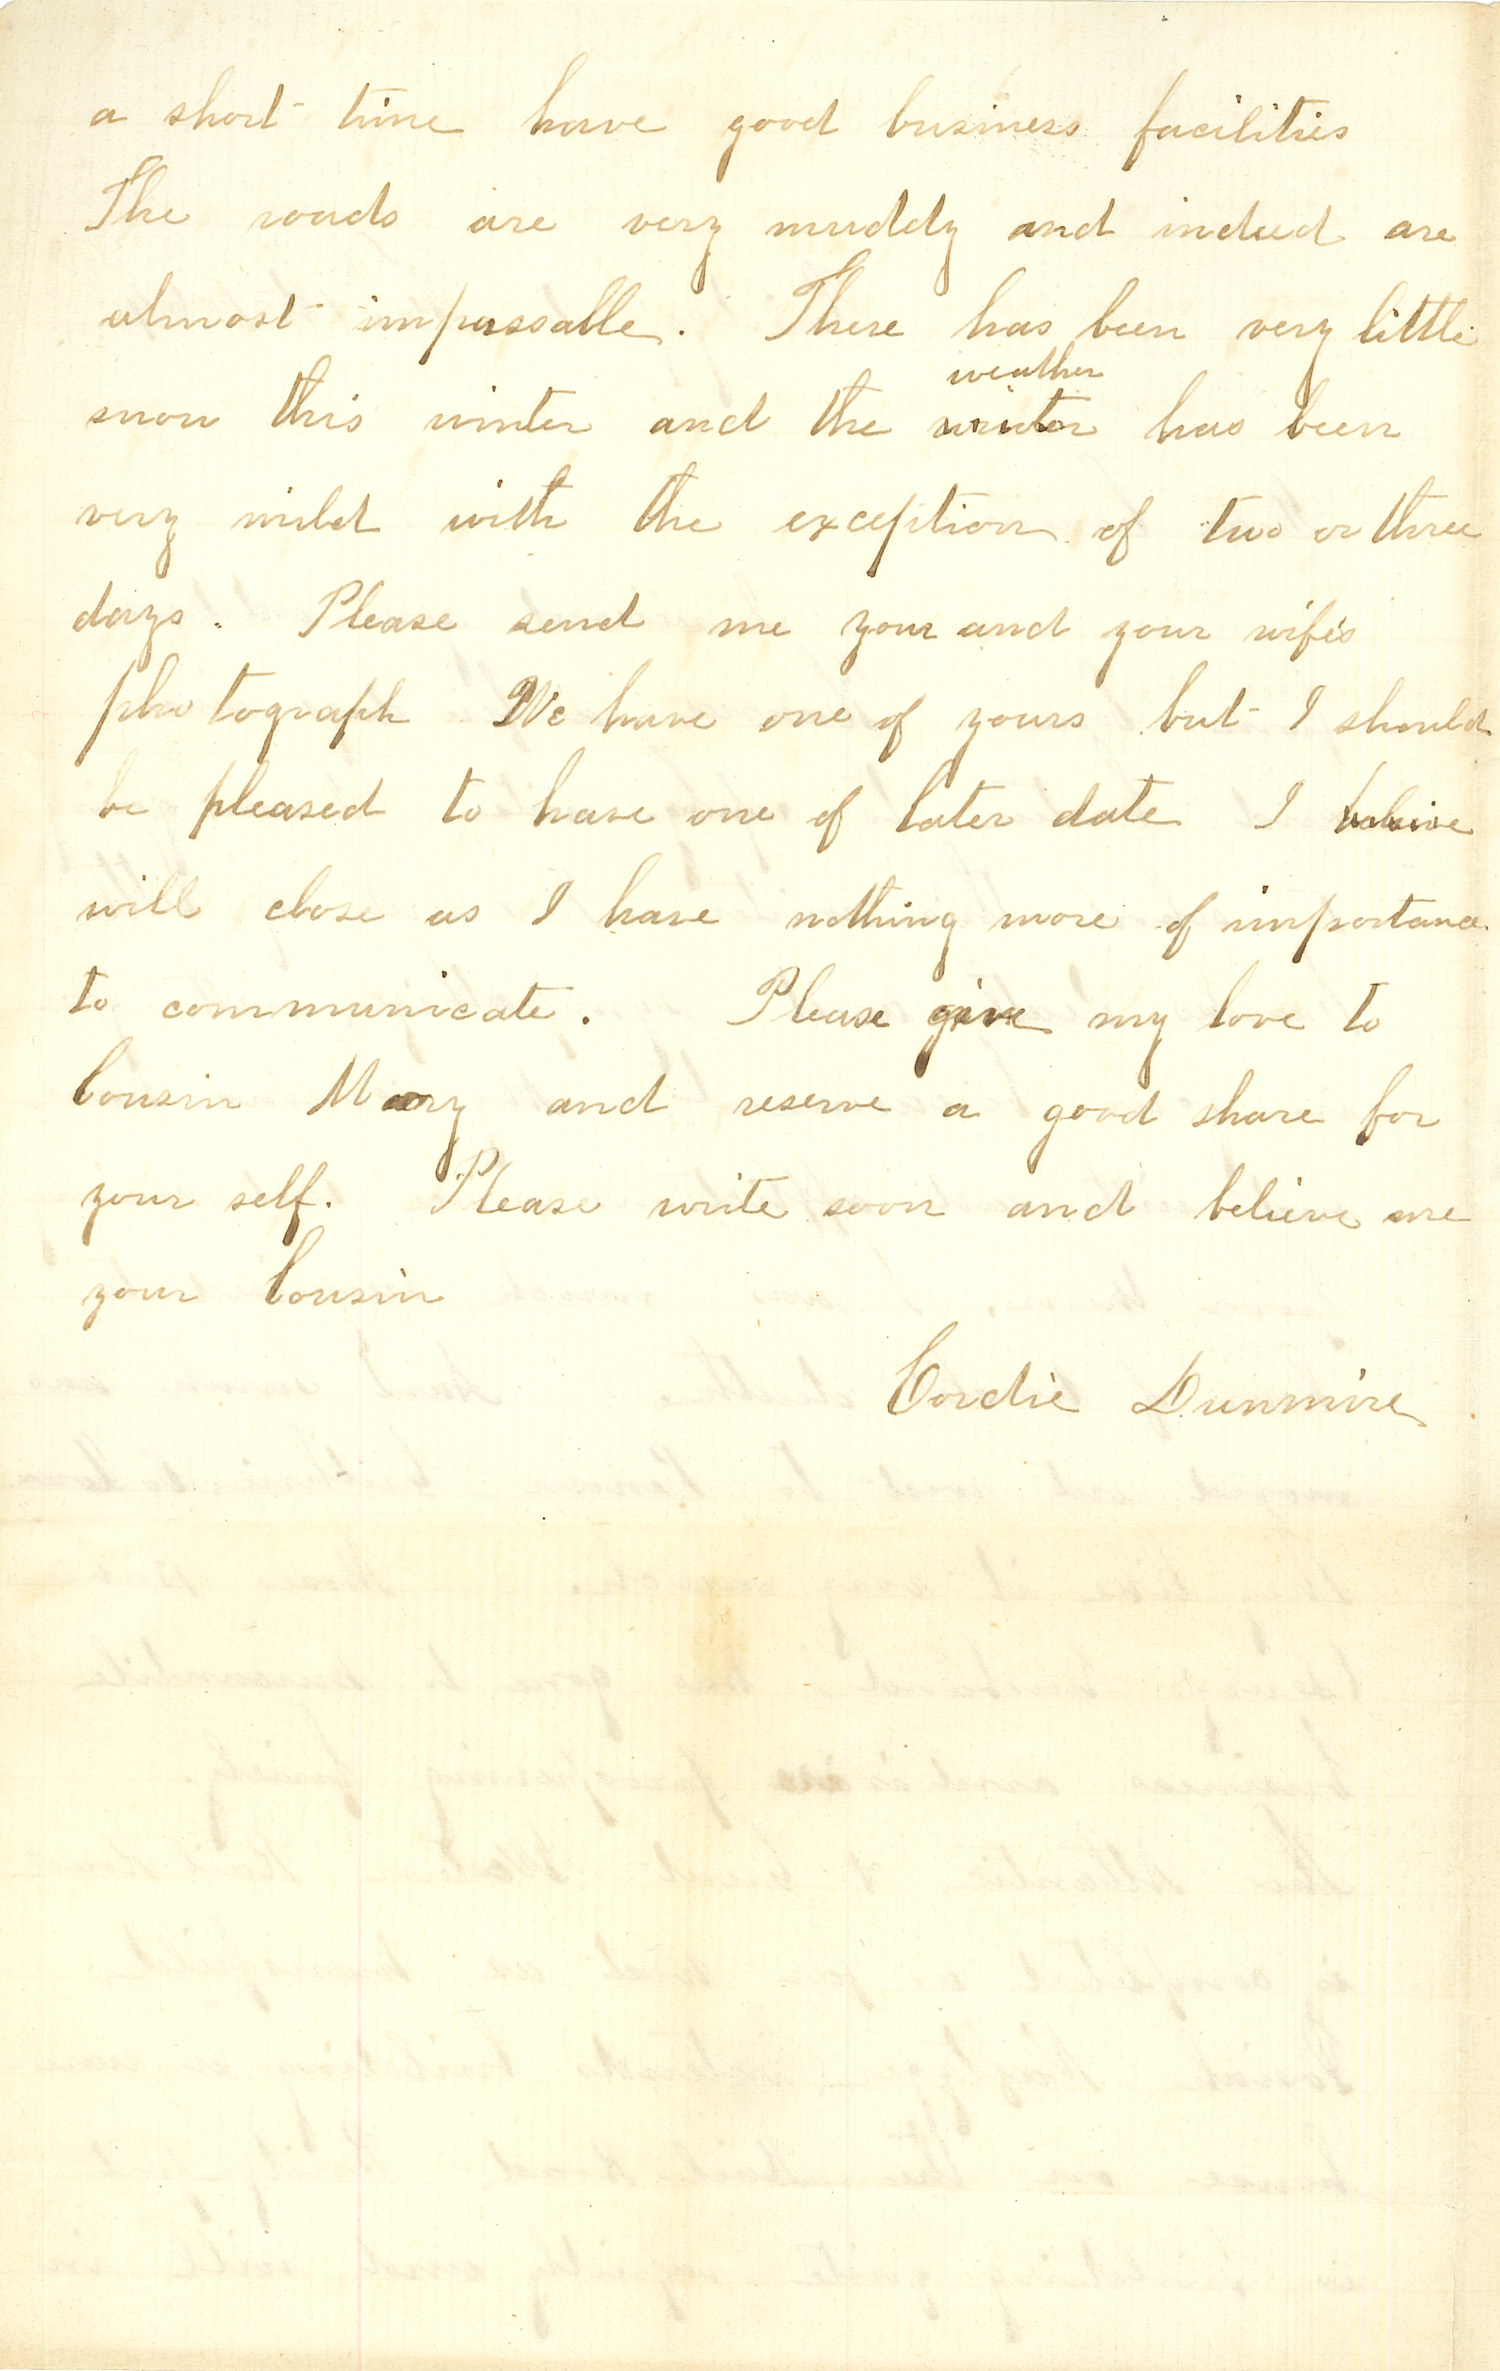 Joseph Culver Letter, February 1, 1864, Letter 2, Page 2